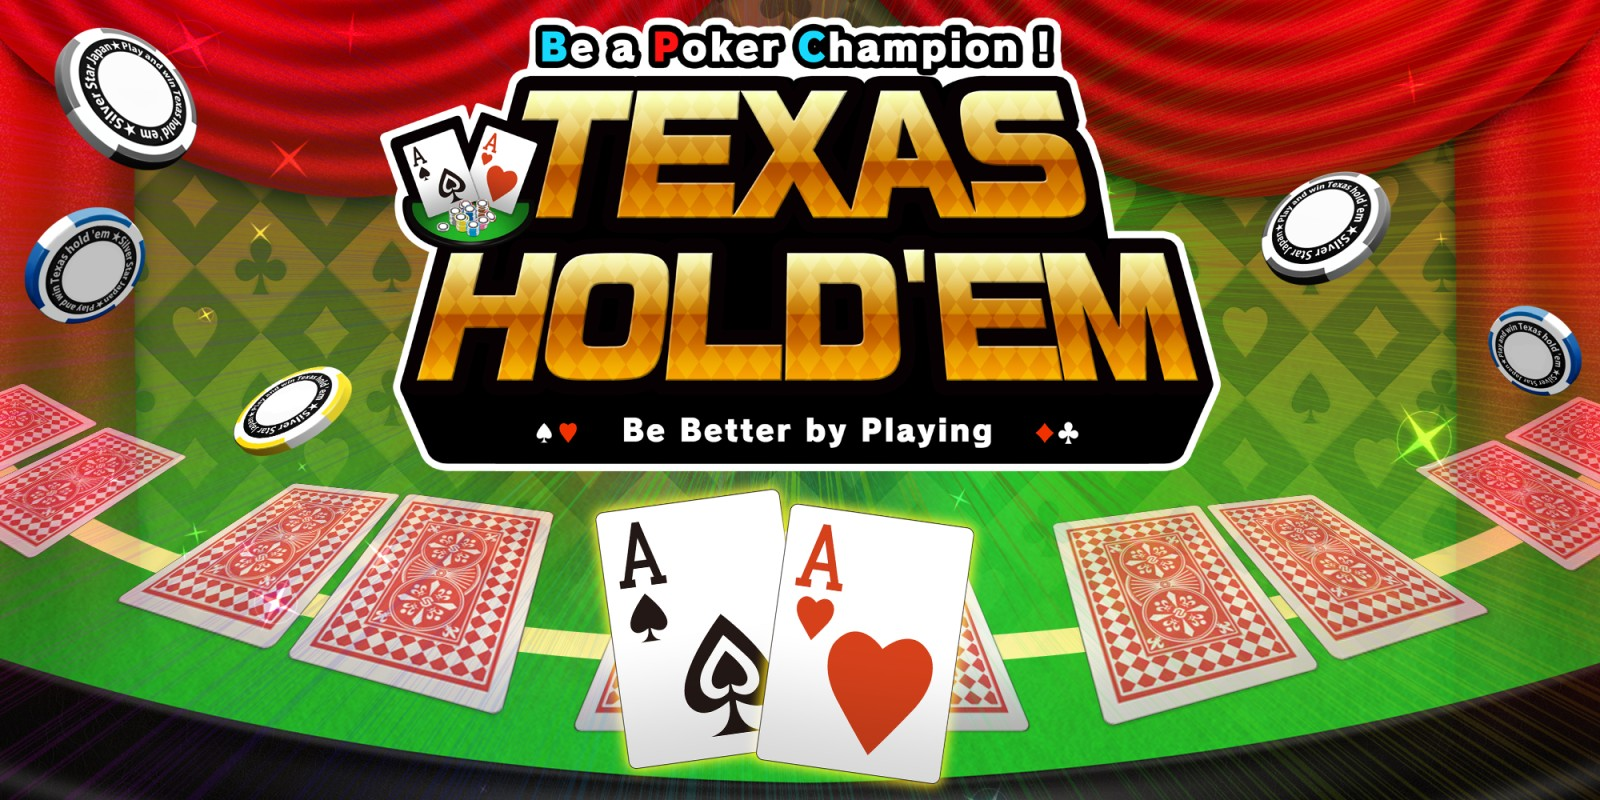 Be a Poker Champion! Texas Hold'em